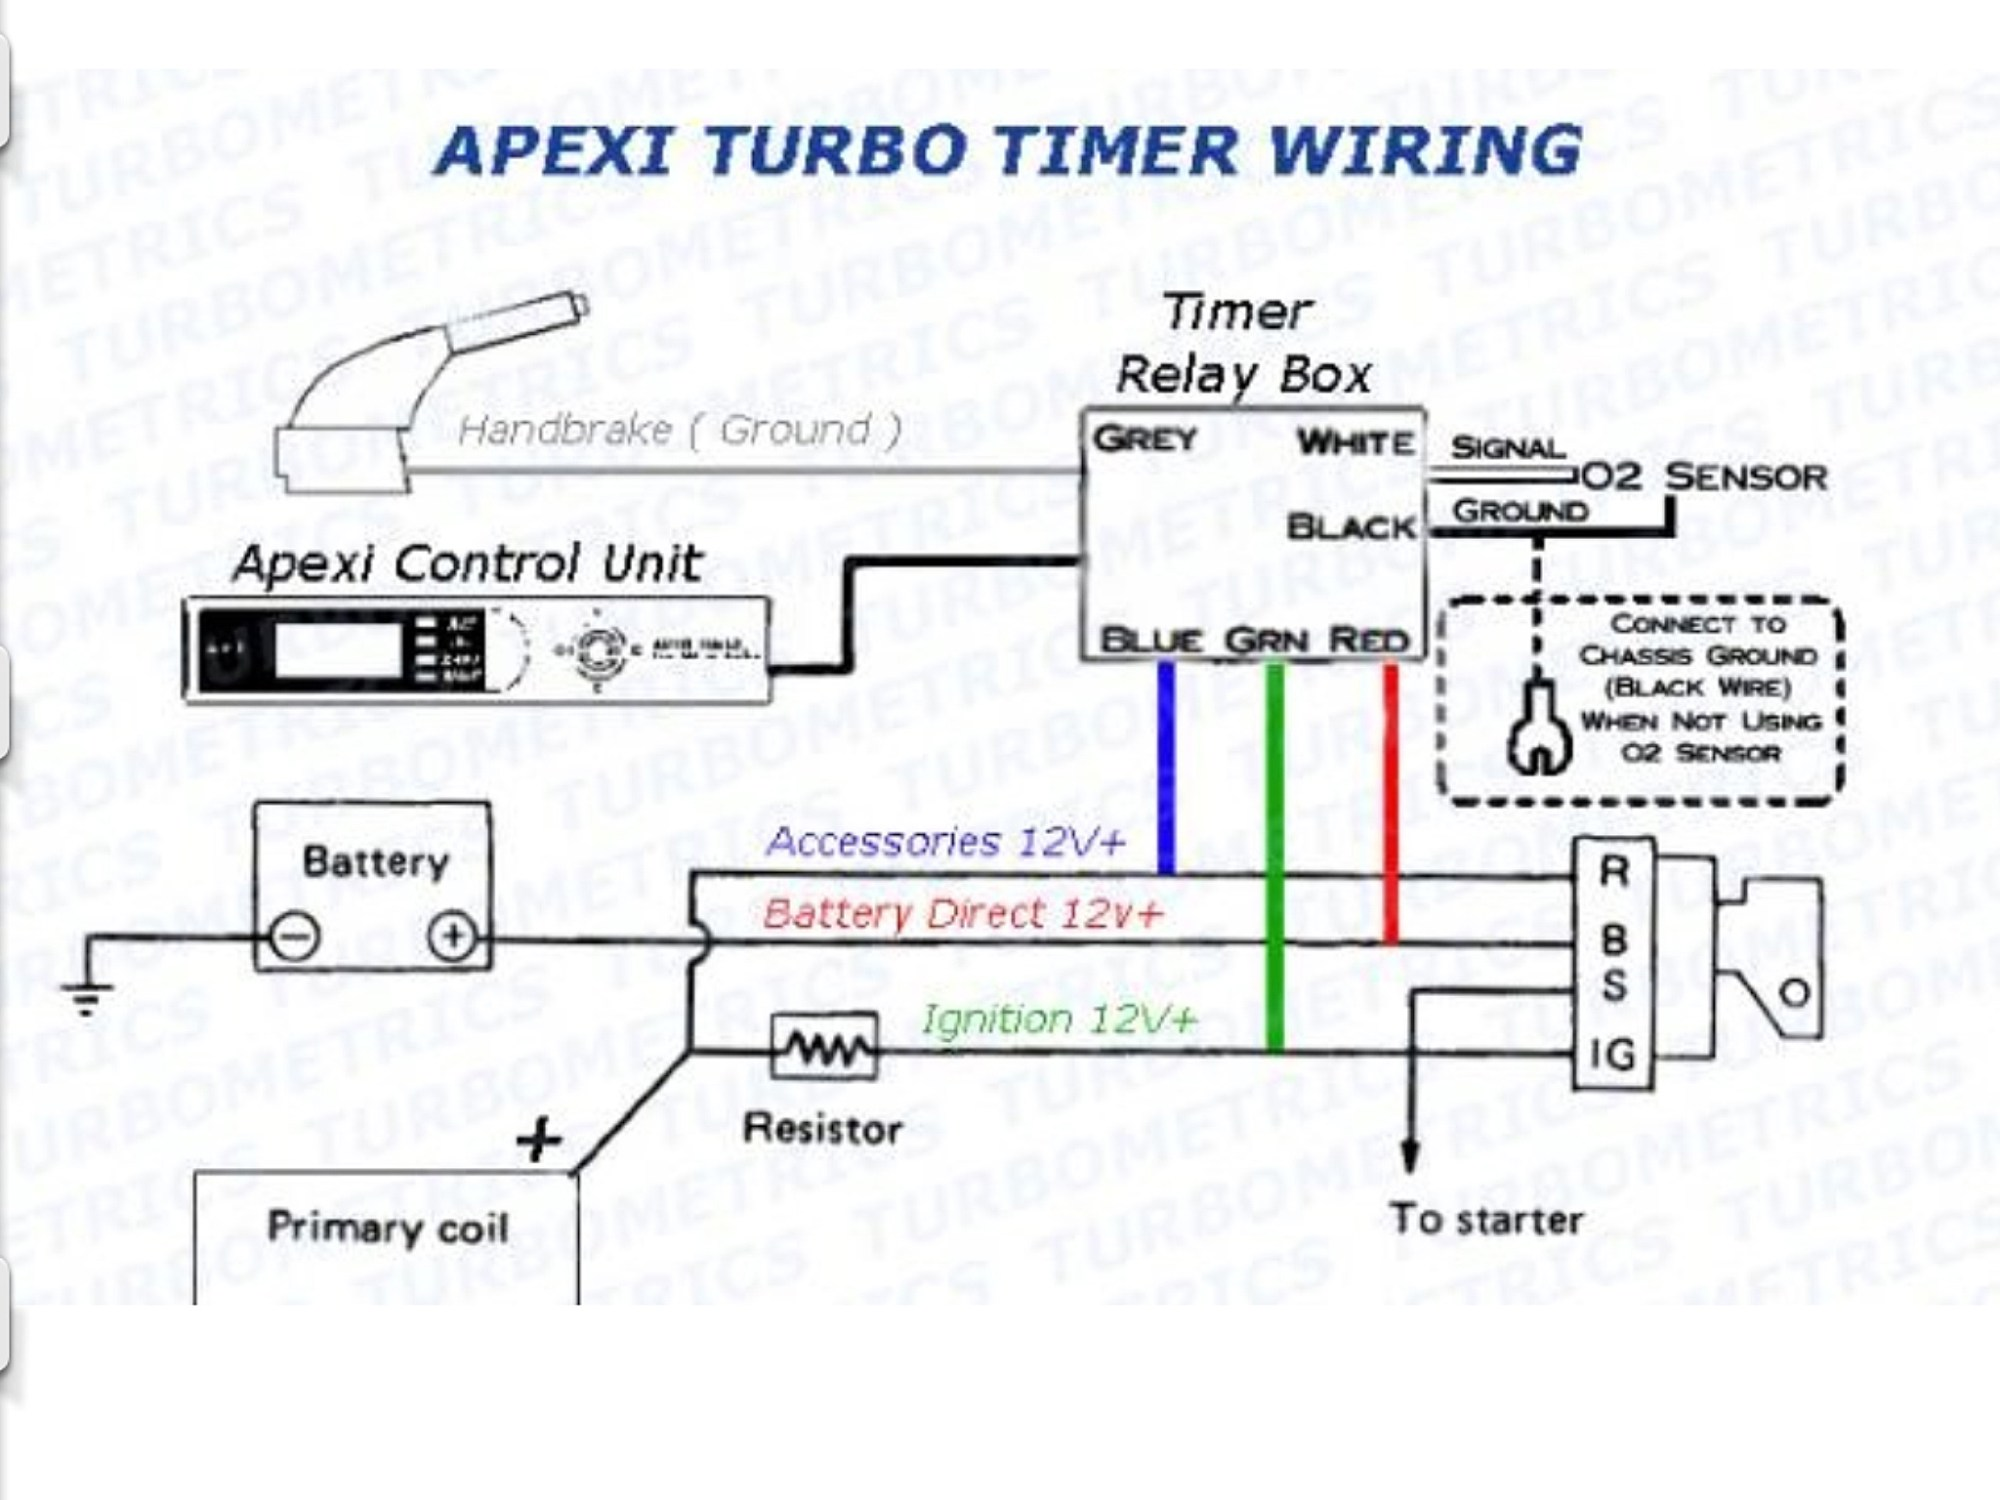 hight resolution of apexi turbo timer wiring diagram data diagram schematic apexi turbo timer wiring diagram apexi turbo timer wiring diagram